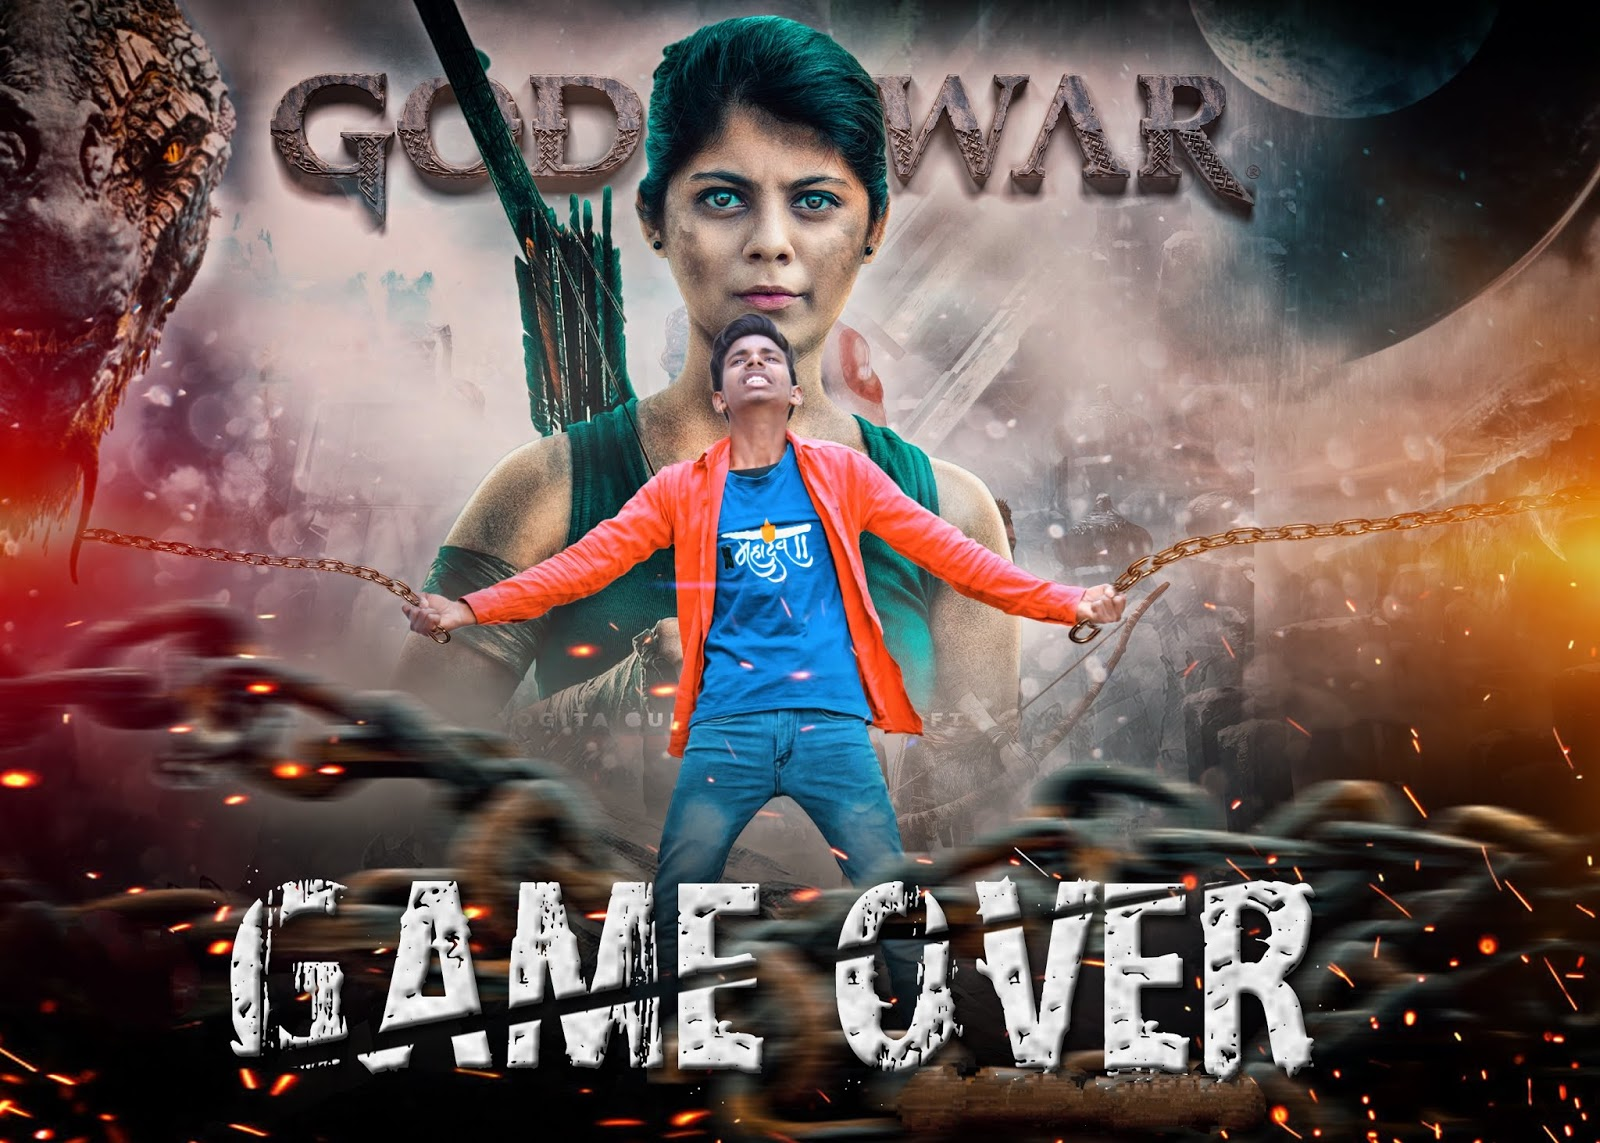 Game Over Poster Editing Background Png Download for Picsart